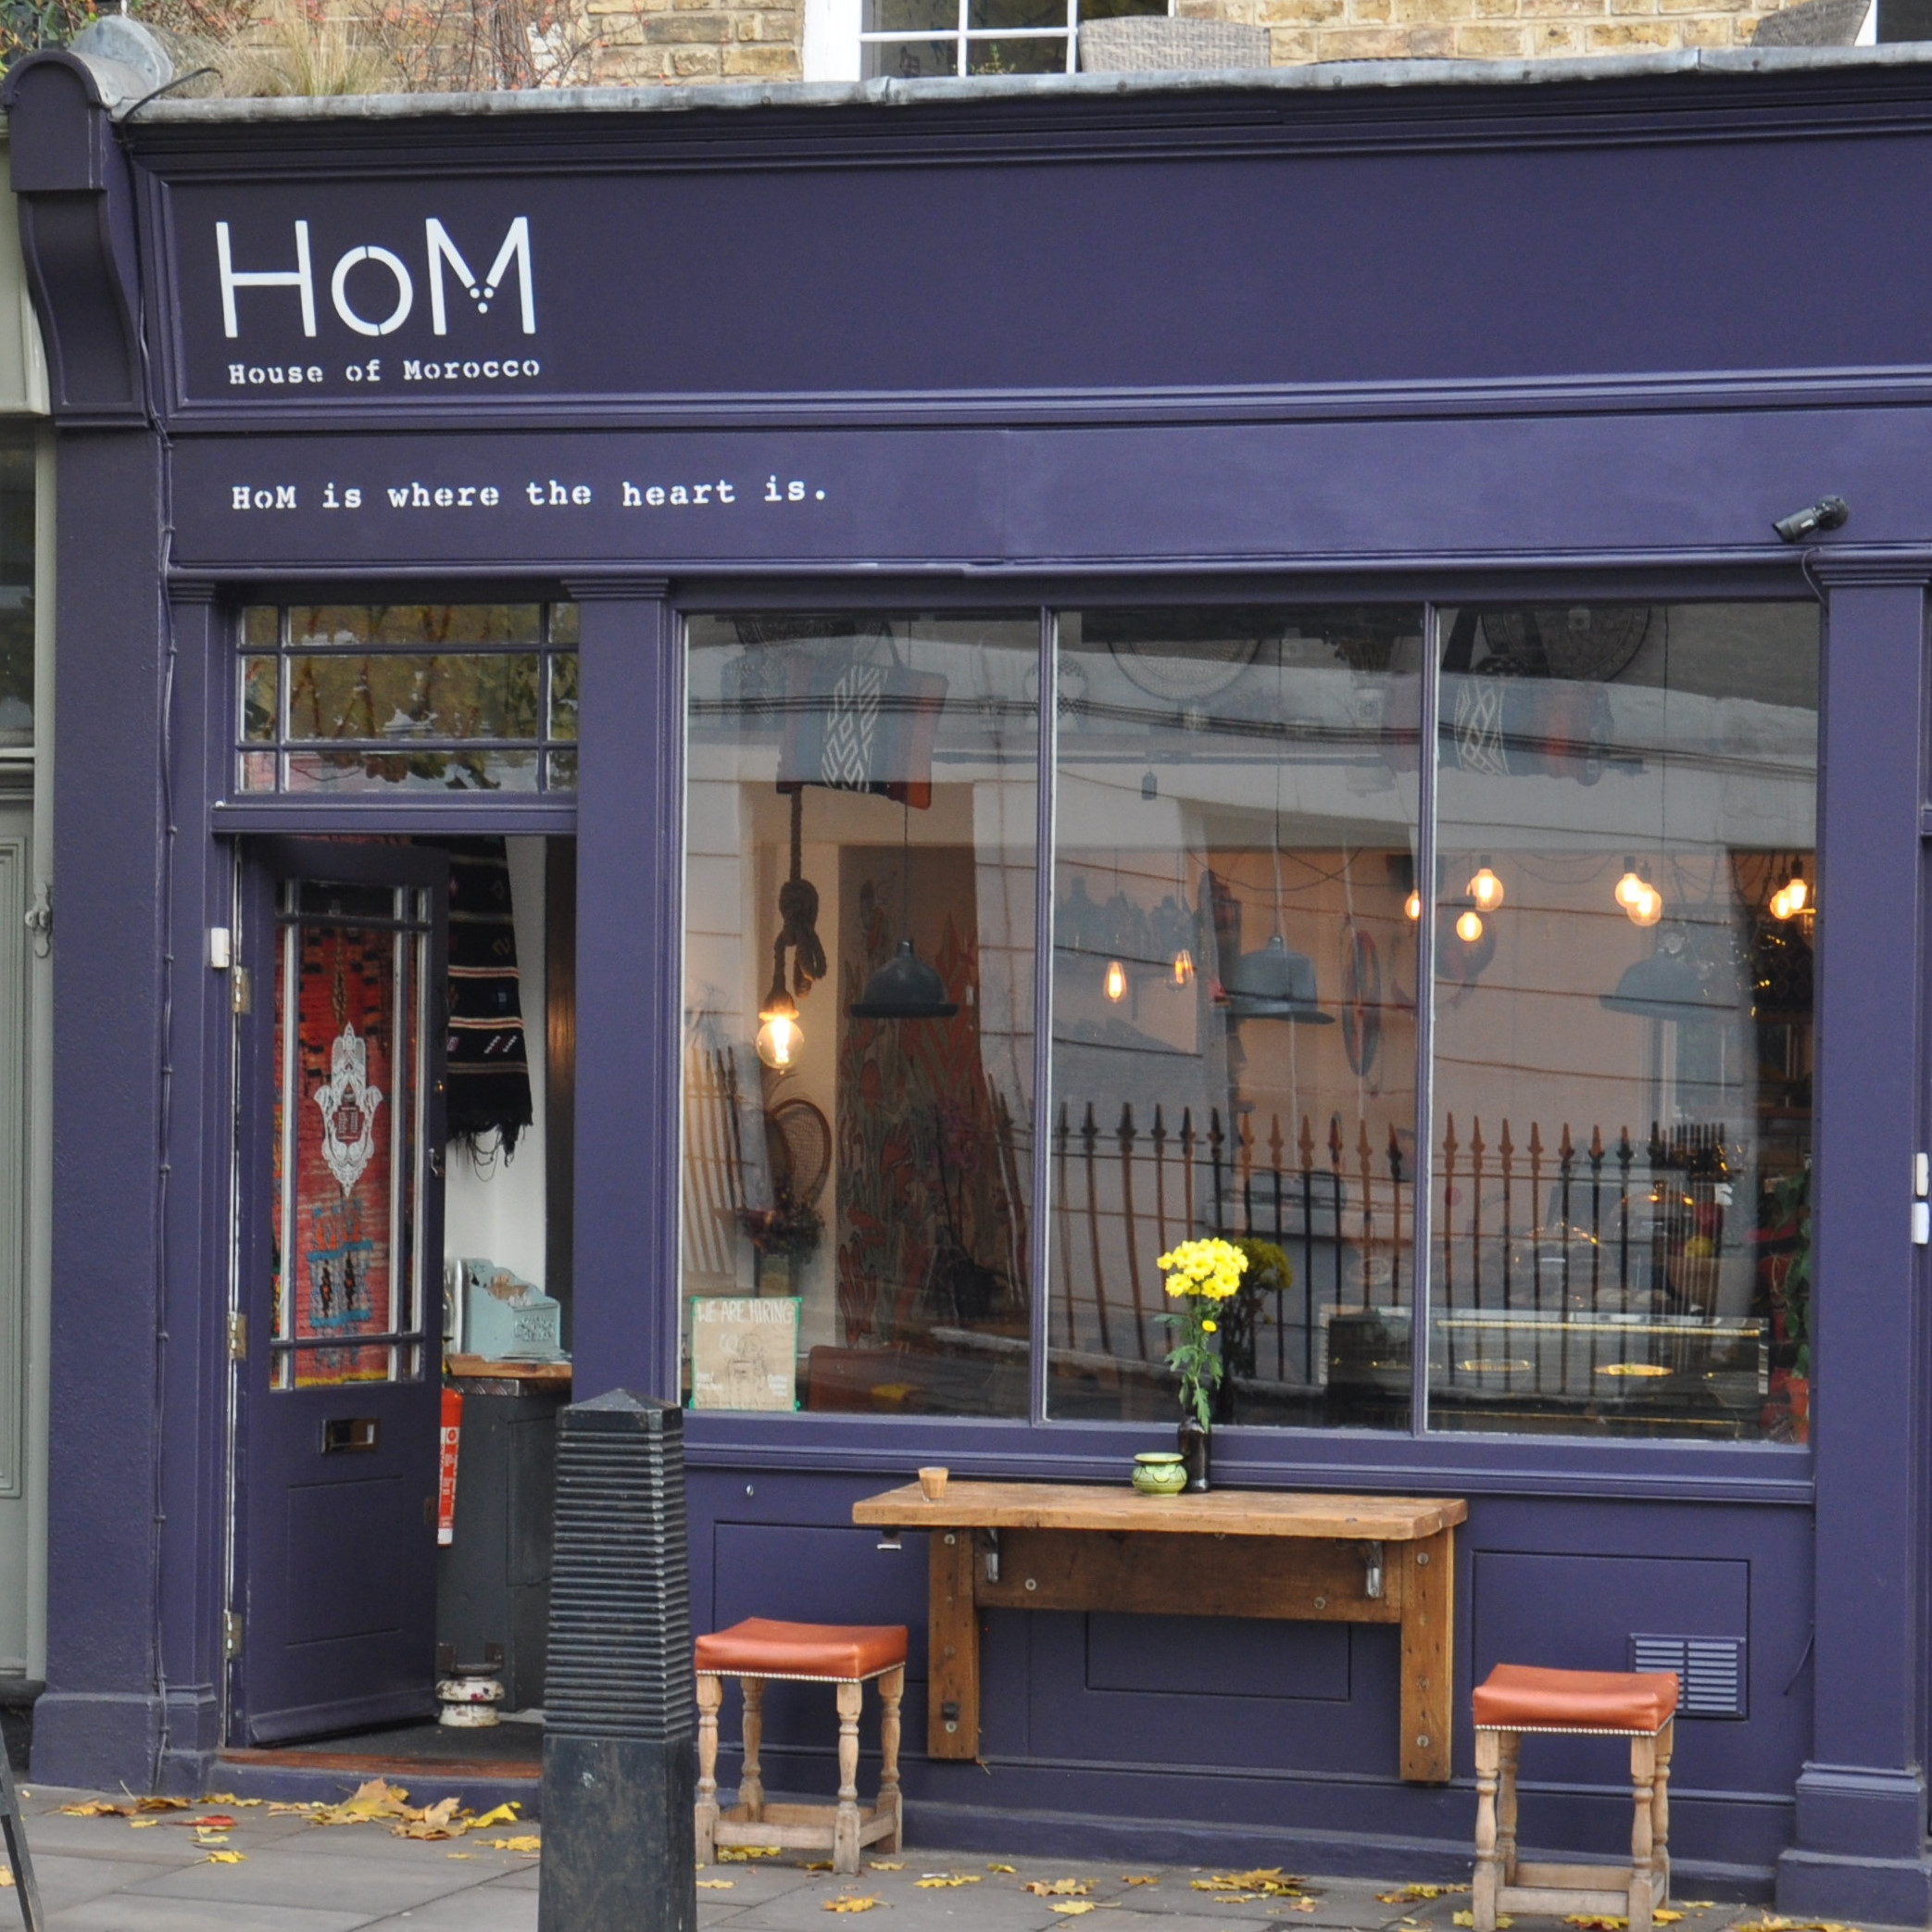 """House of Morocco (HoM for short) with its slogan """"HoM is where the heart is"""" is a new addition to London's coffee scene, occupying the site of what was Pattern Coffee."""